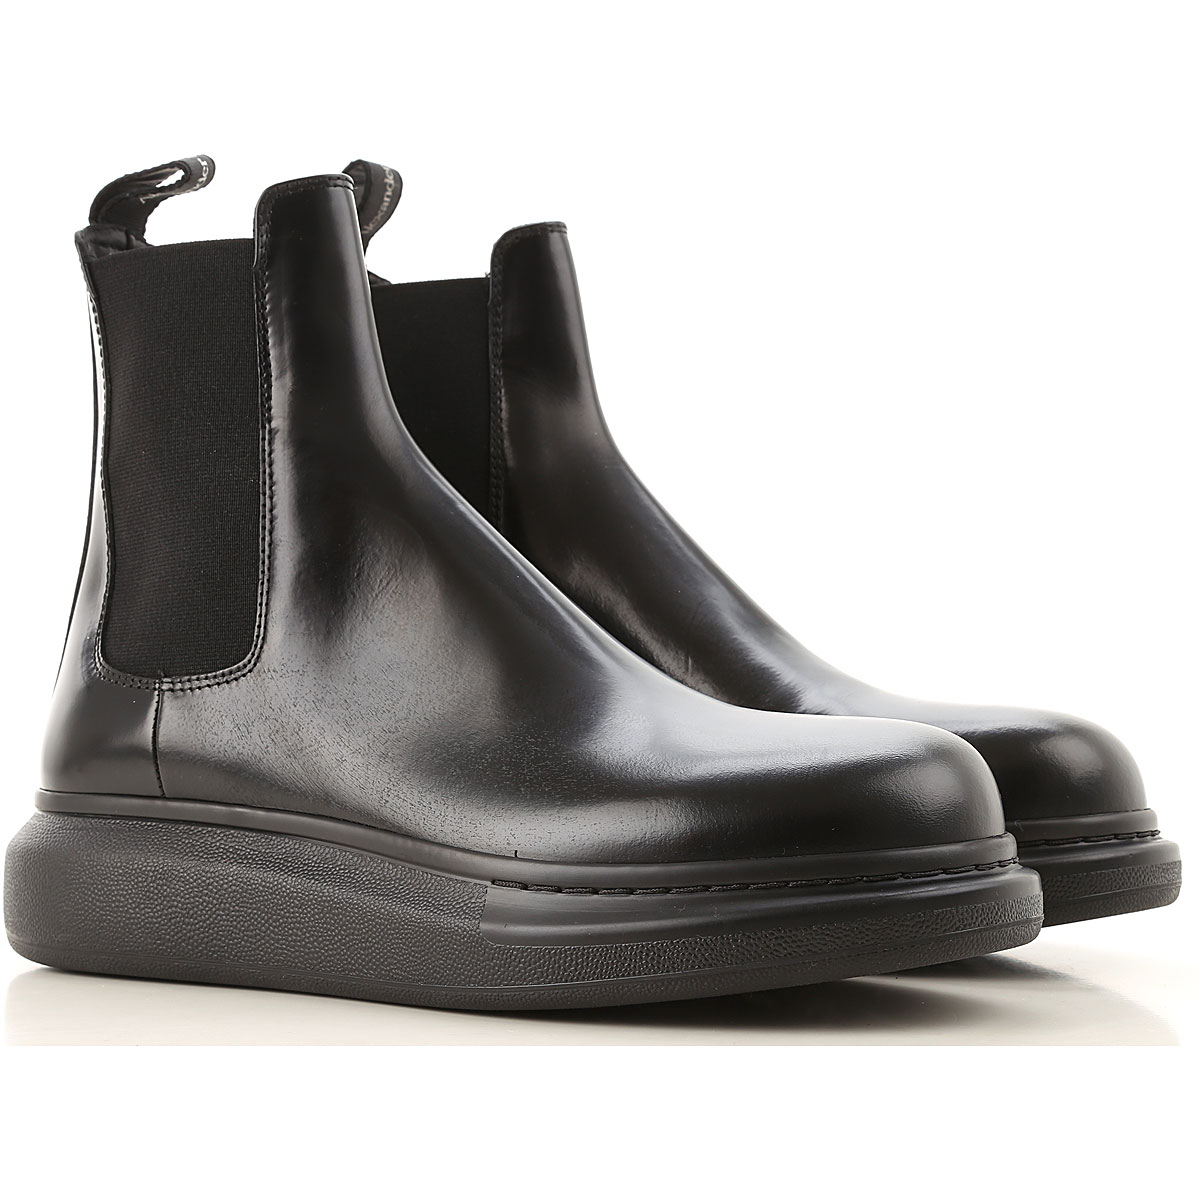 Alexander McQueen Chelsea Boots for Men On Sale, Black, Leather, 2019, EUR 42 - US 9 - UK 8 EUR 43 - US 10 - UK 9 EUR 44 - US 11 - UK 10 EUR 45 - US 1